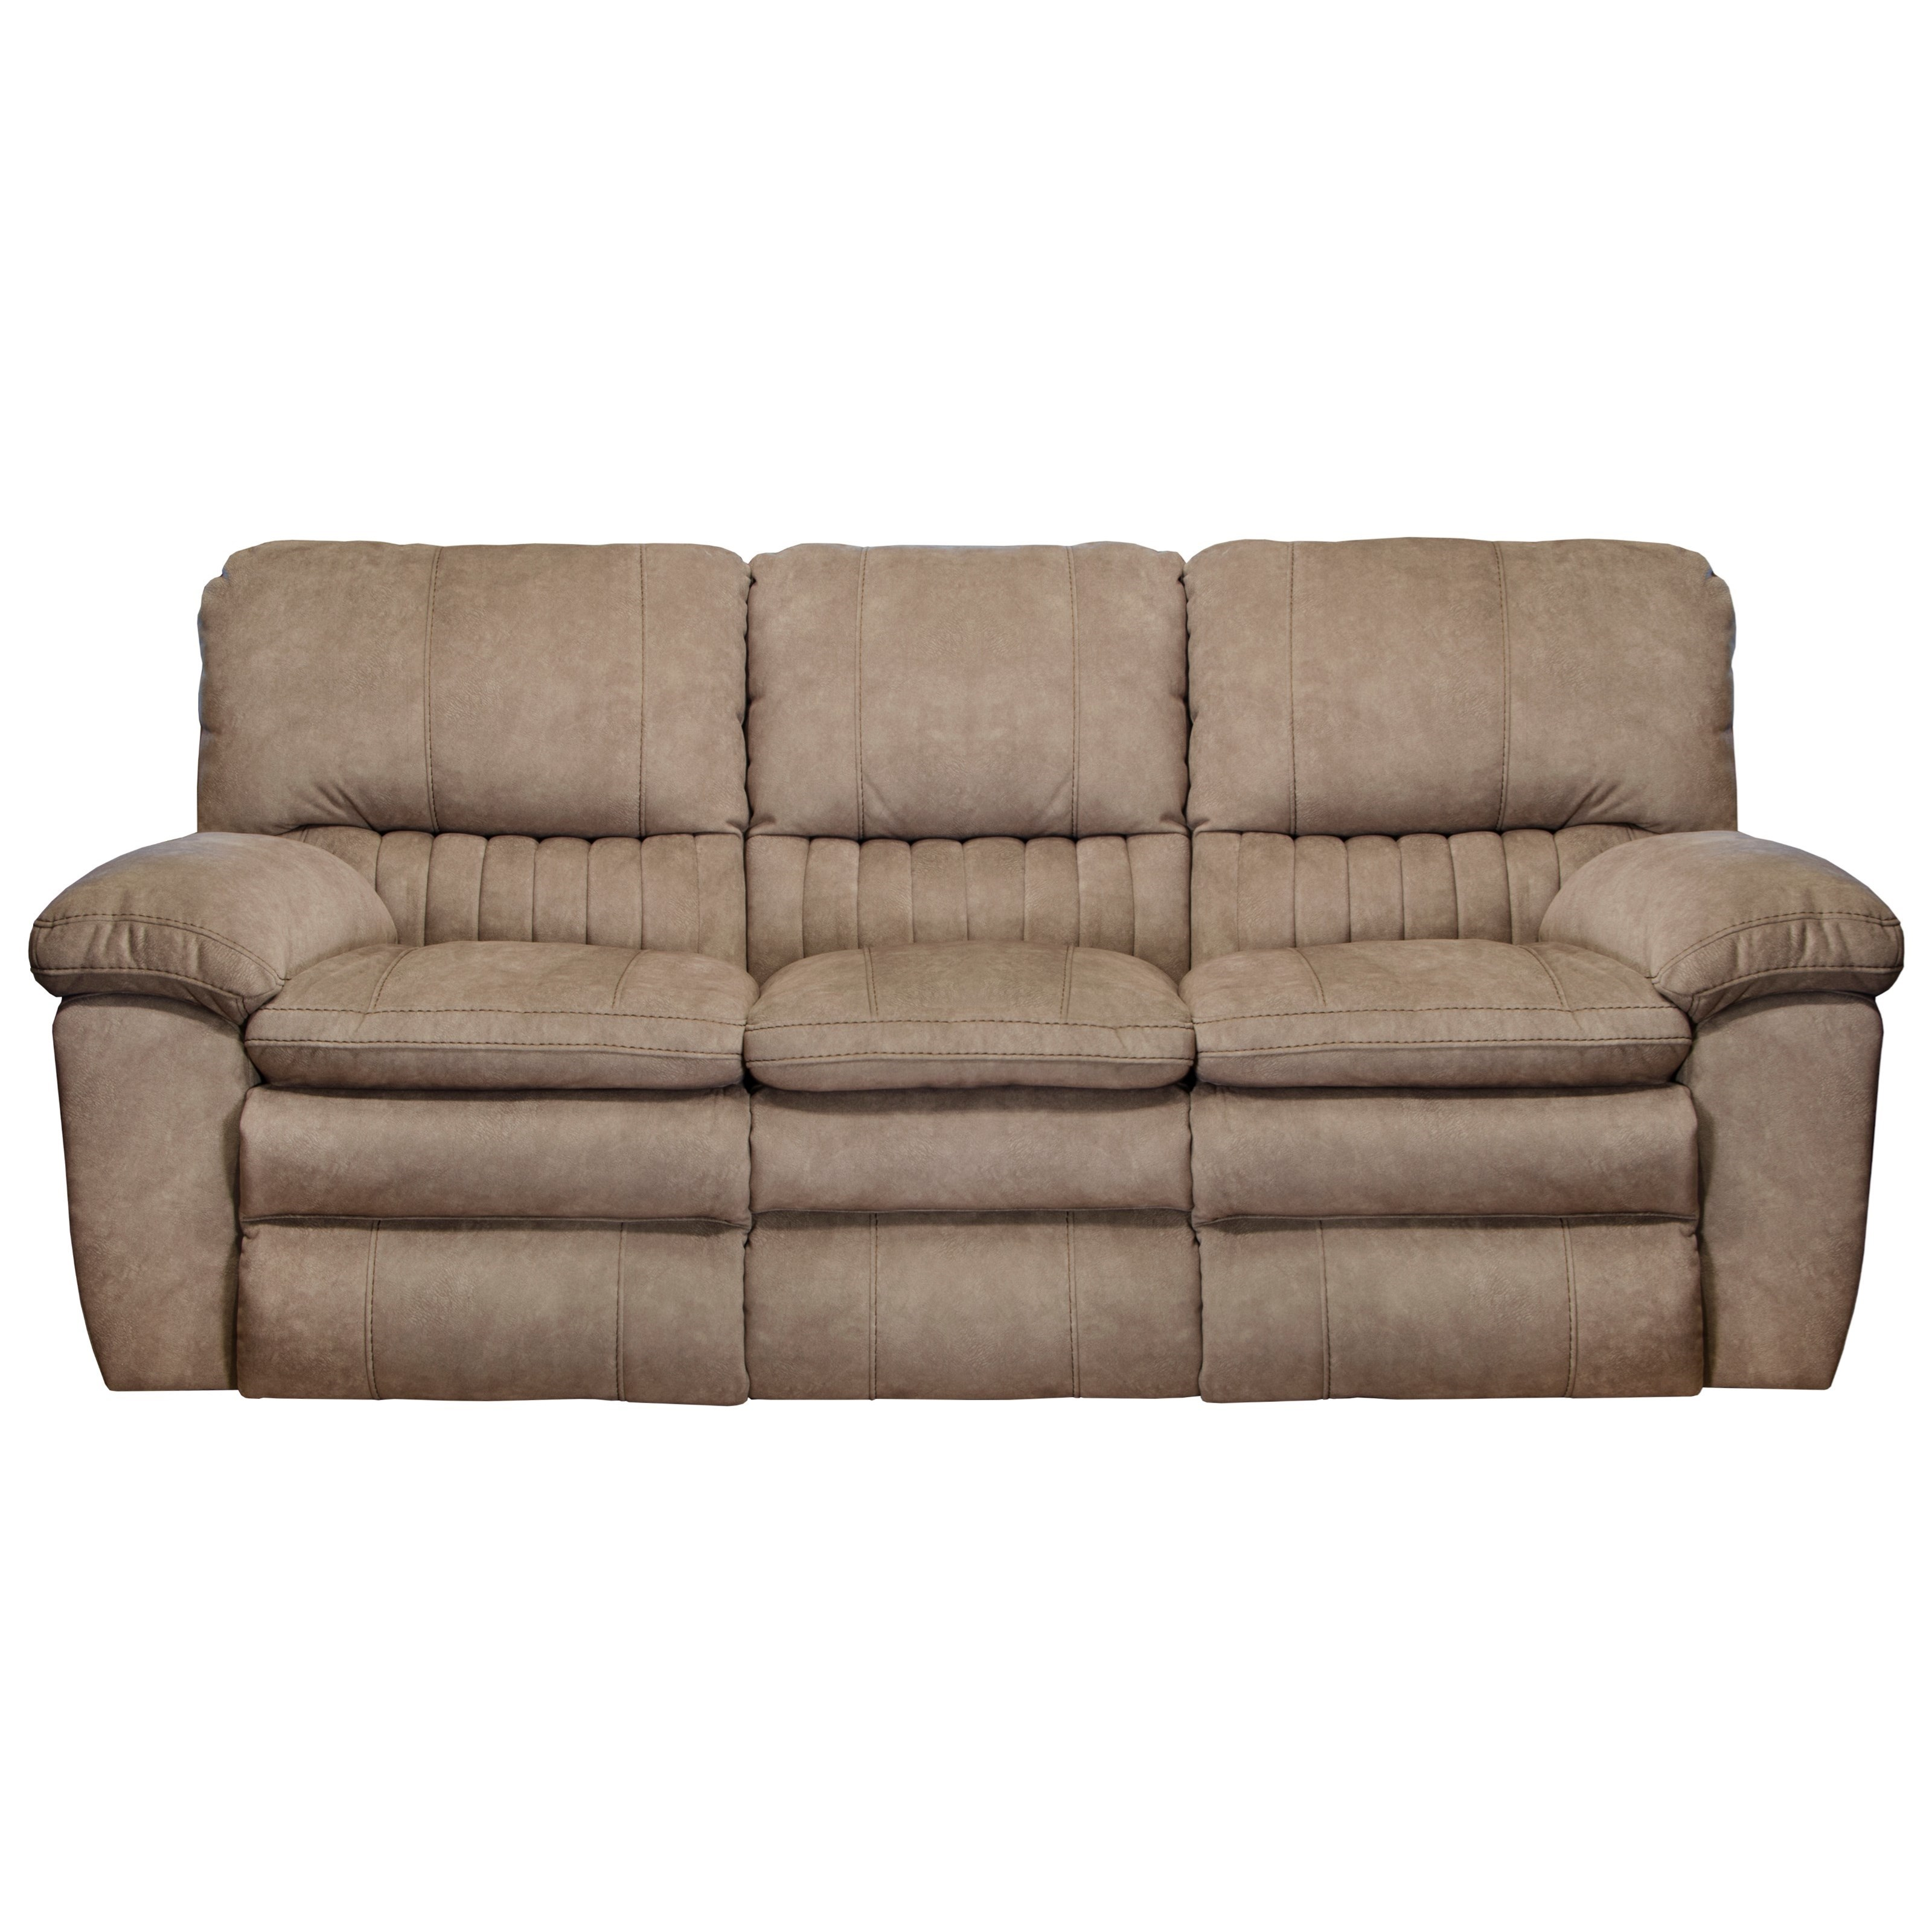 Reyes Lay Flat Reclining Sofa by Catnapper at Northeast Factory Direct